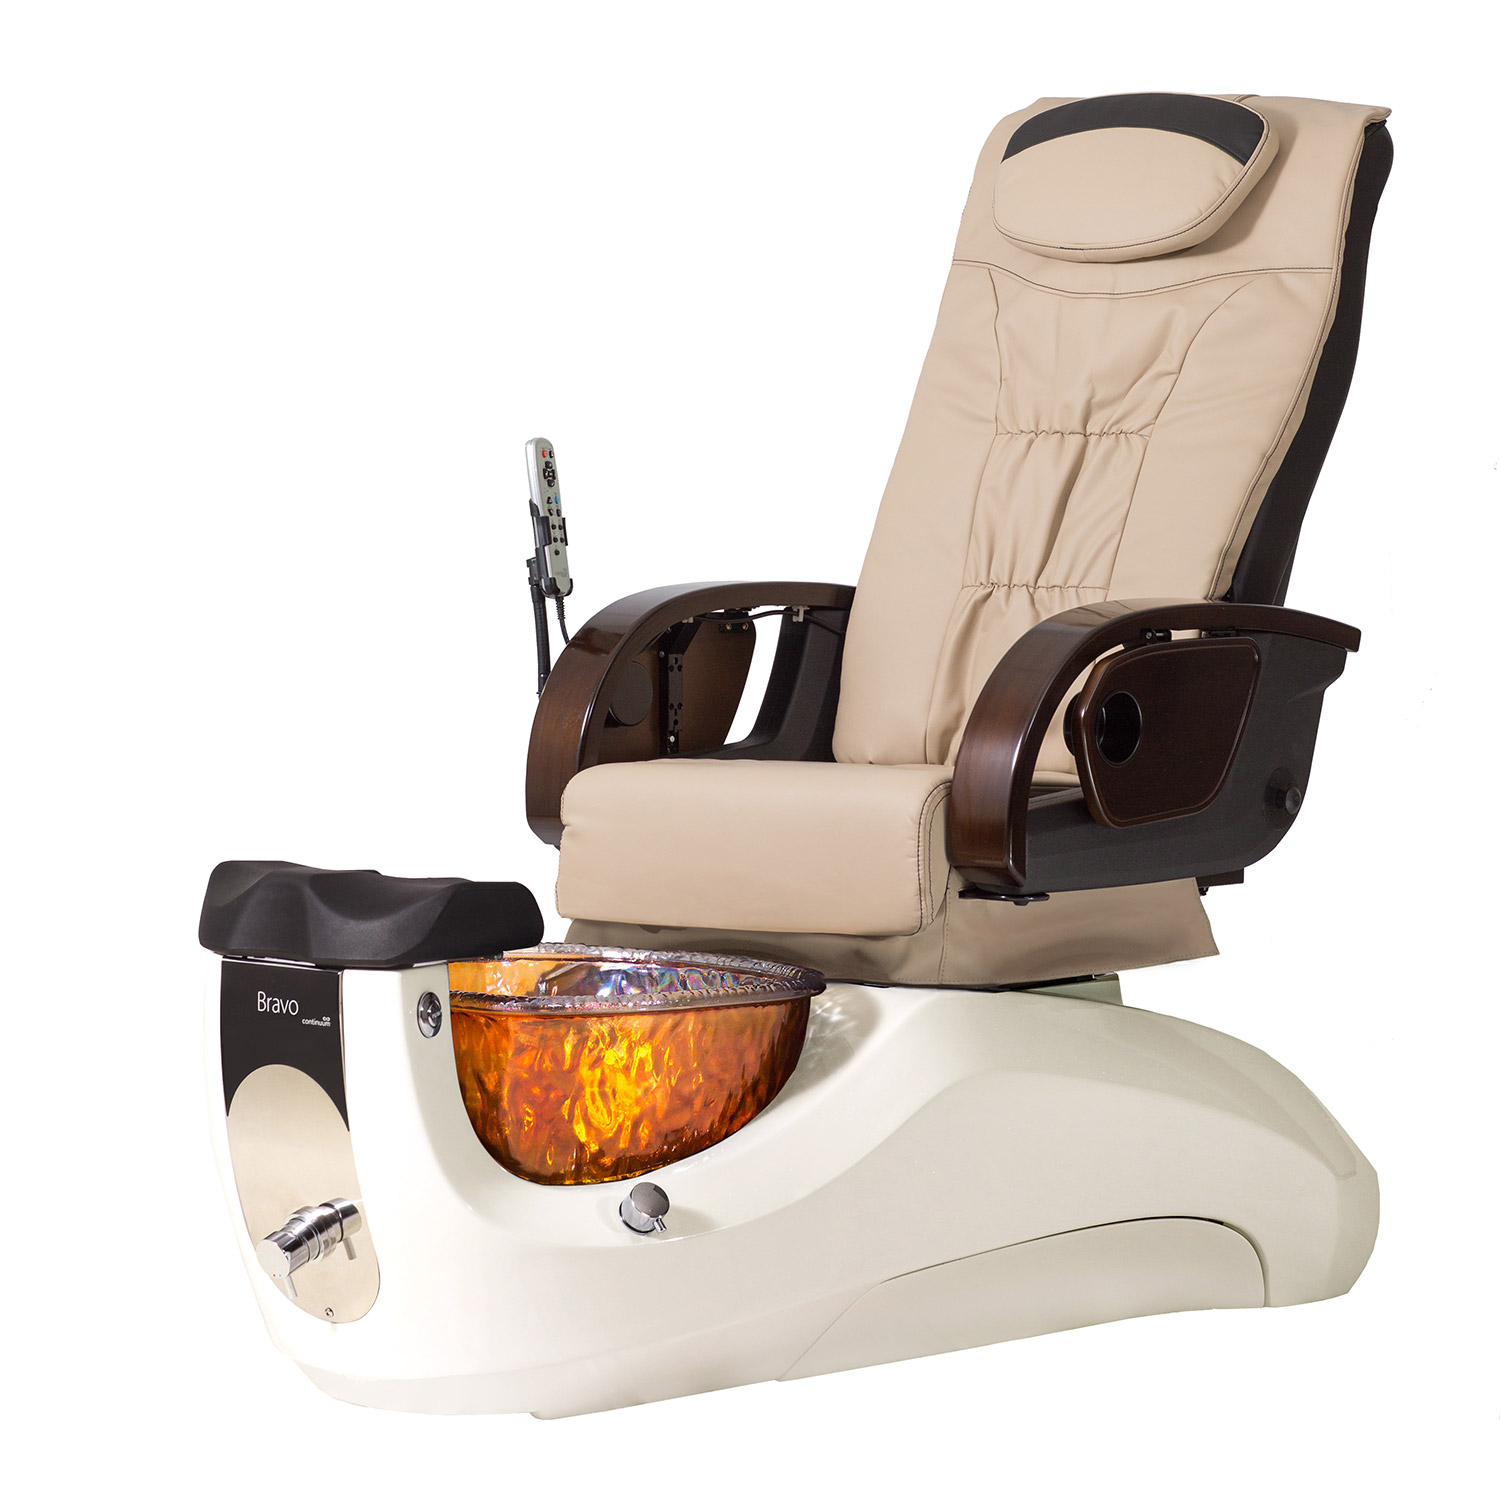 Continuum Bravo with Glass Basin Pedicure Spa Chair alternative product image 3